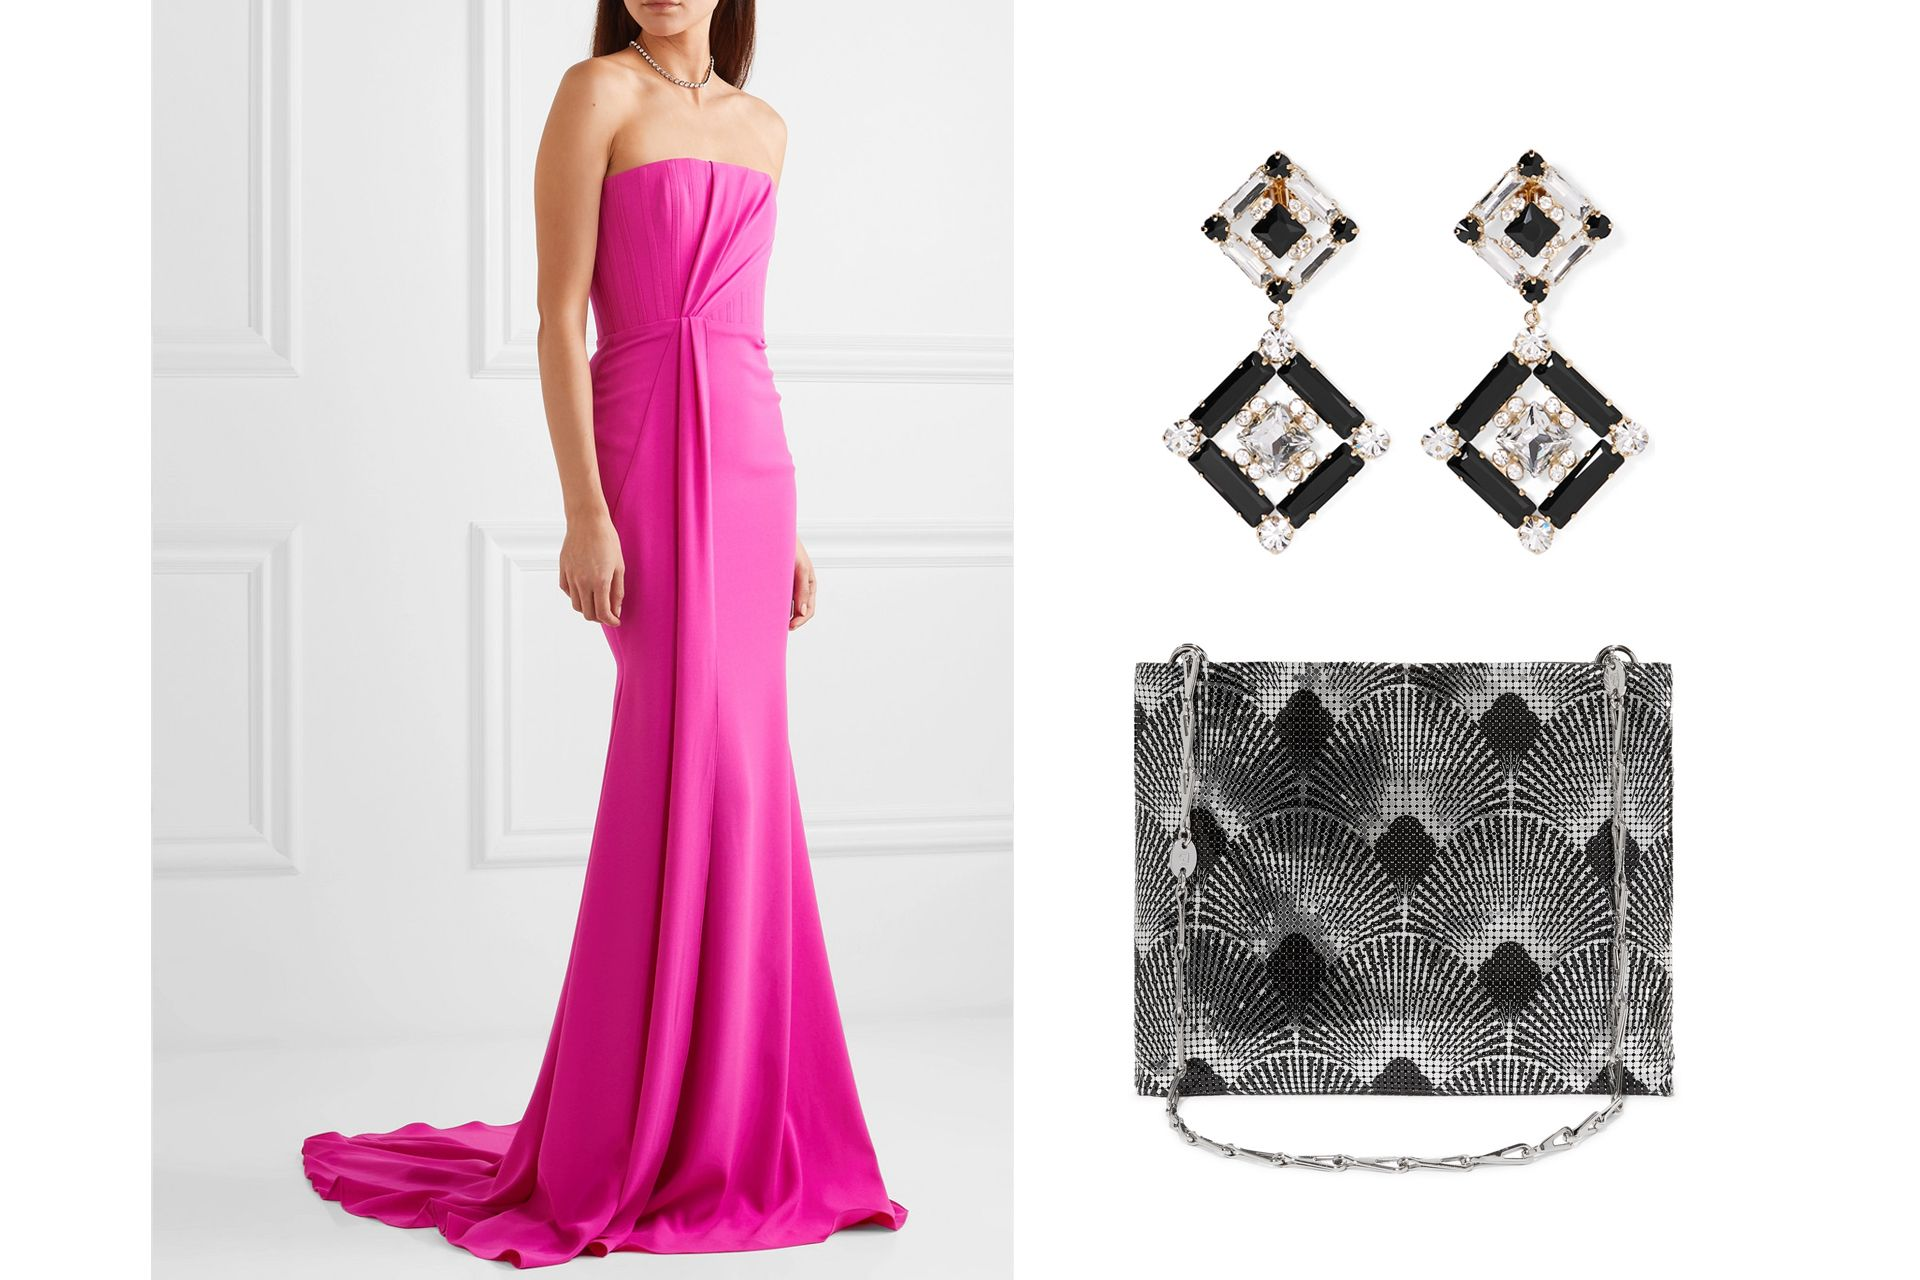 How To Complete Your Look For The Tatler Ball With The Right Accessories